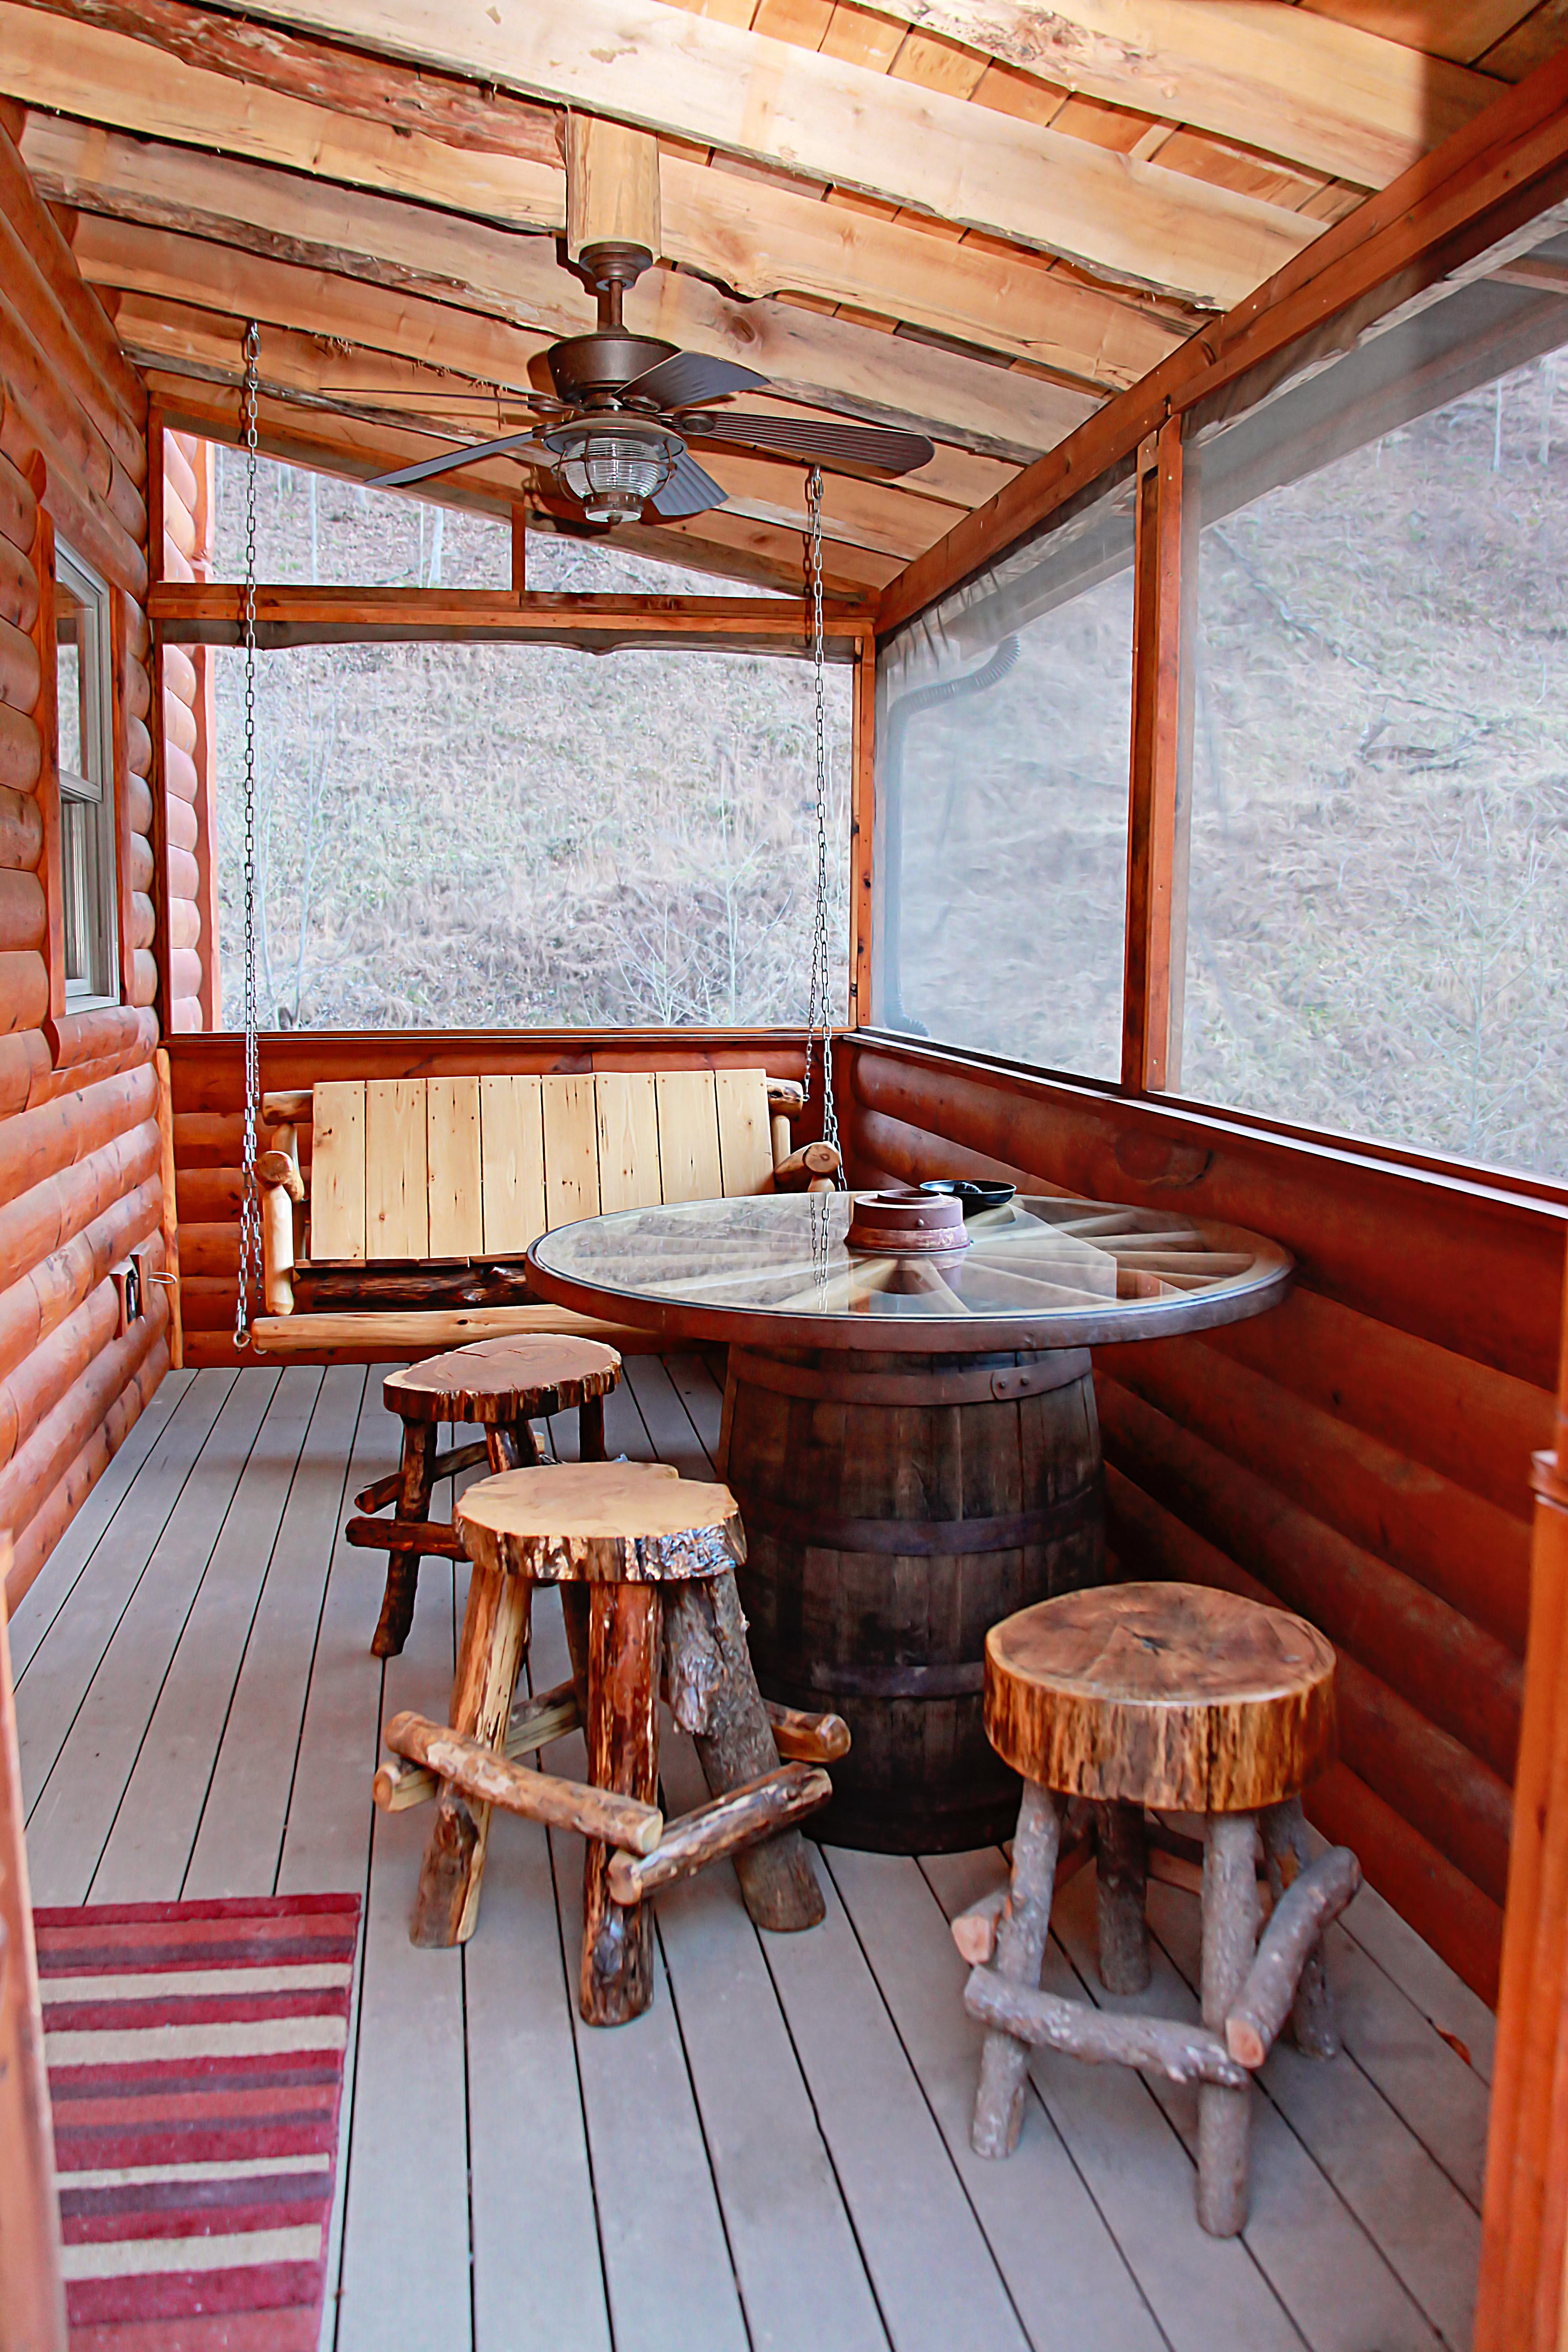 california lake sale rent wv cabins big tub with bear in hot log for lakefront jacuzzi